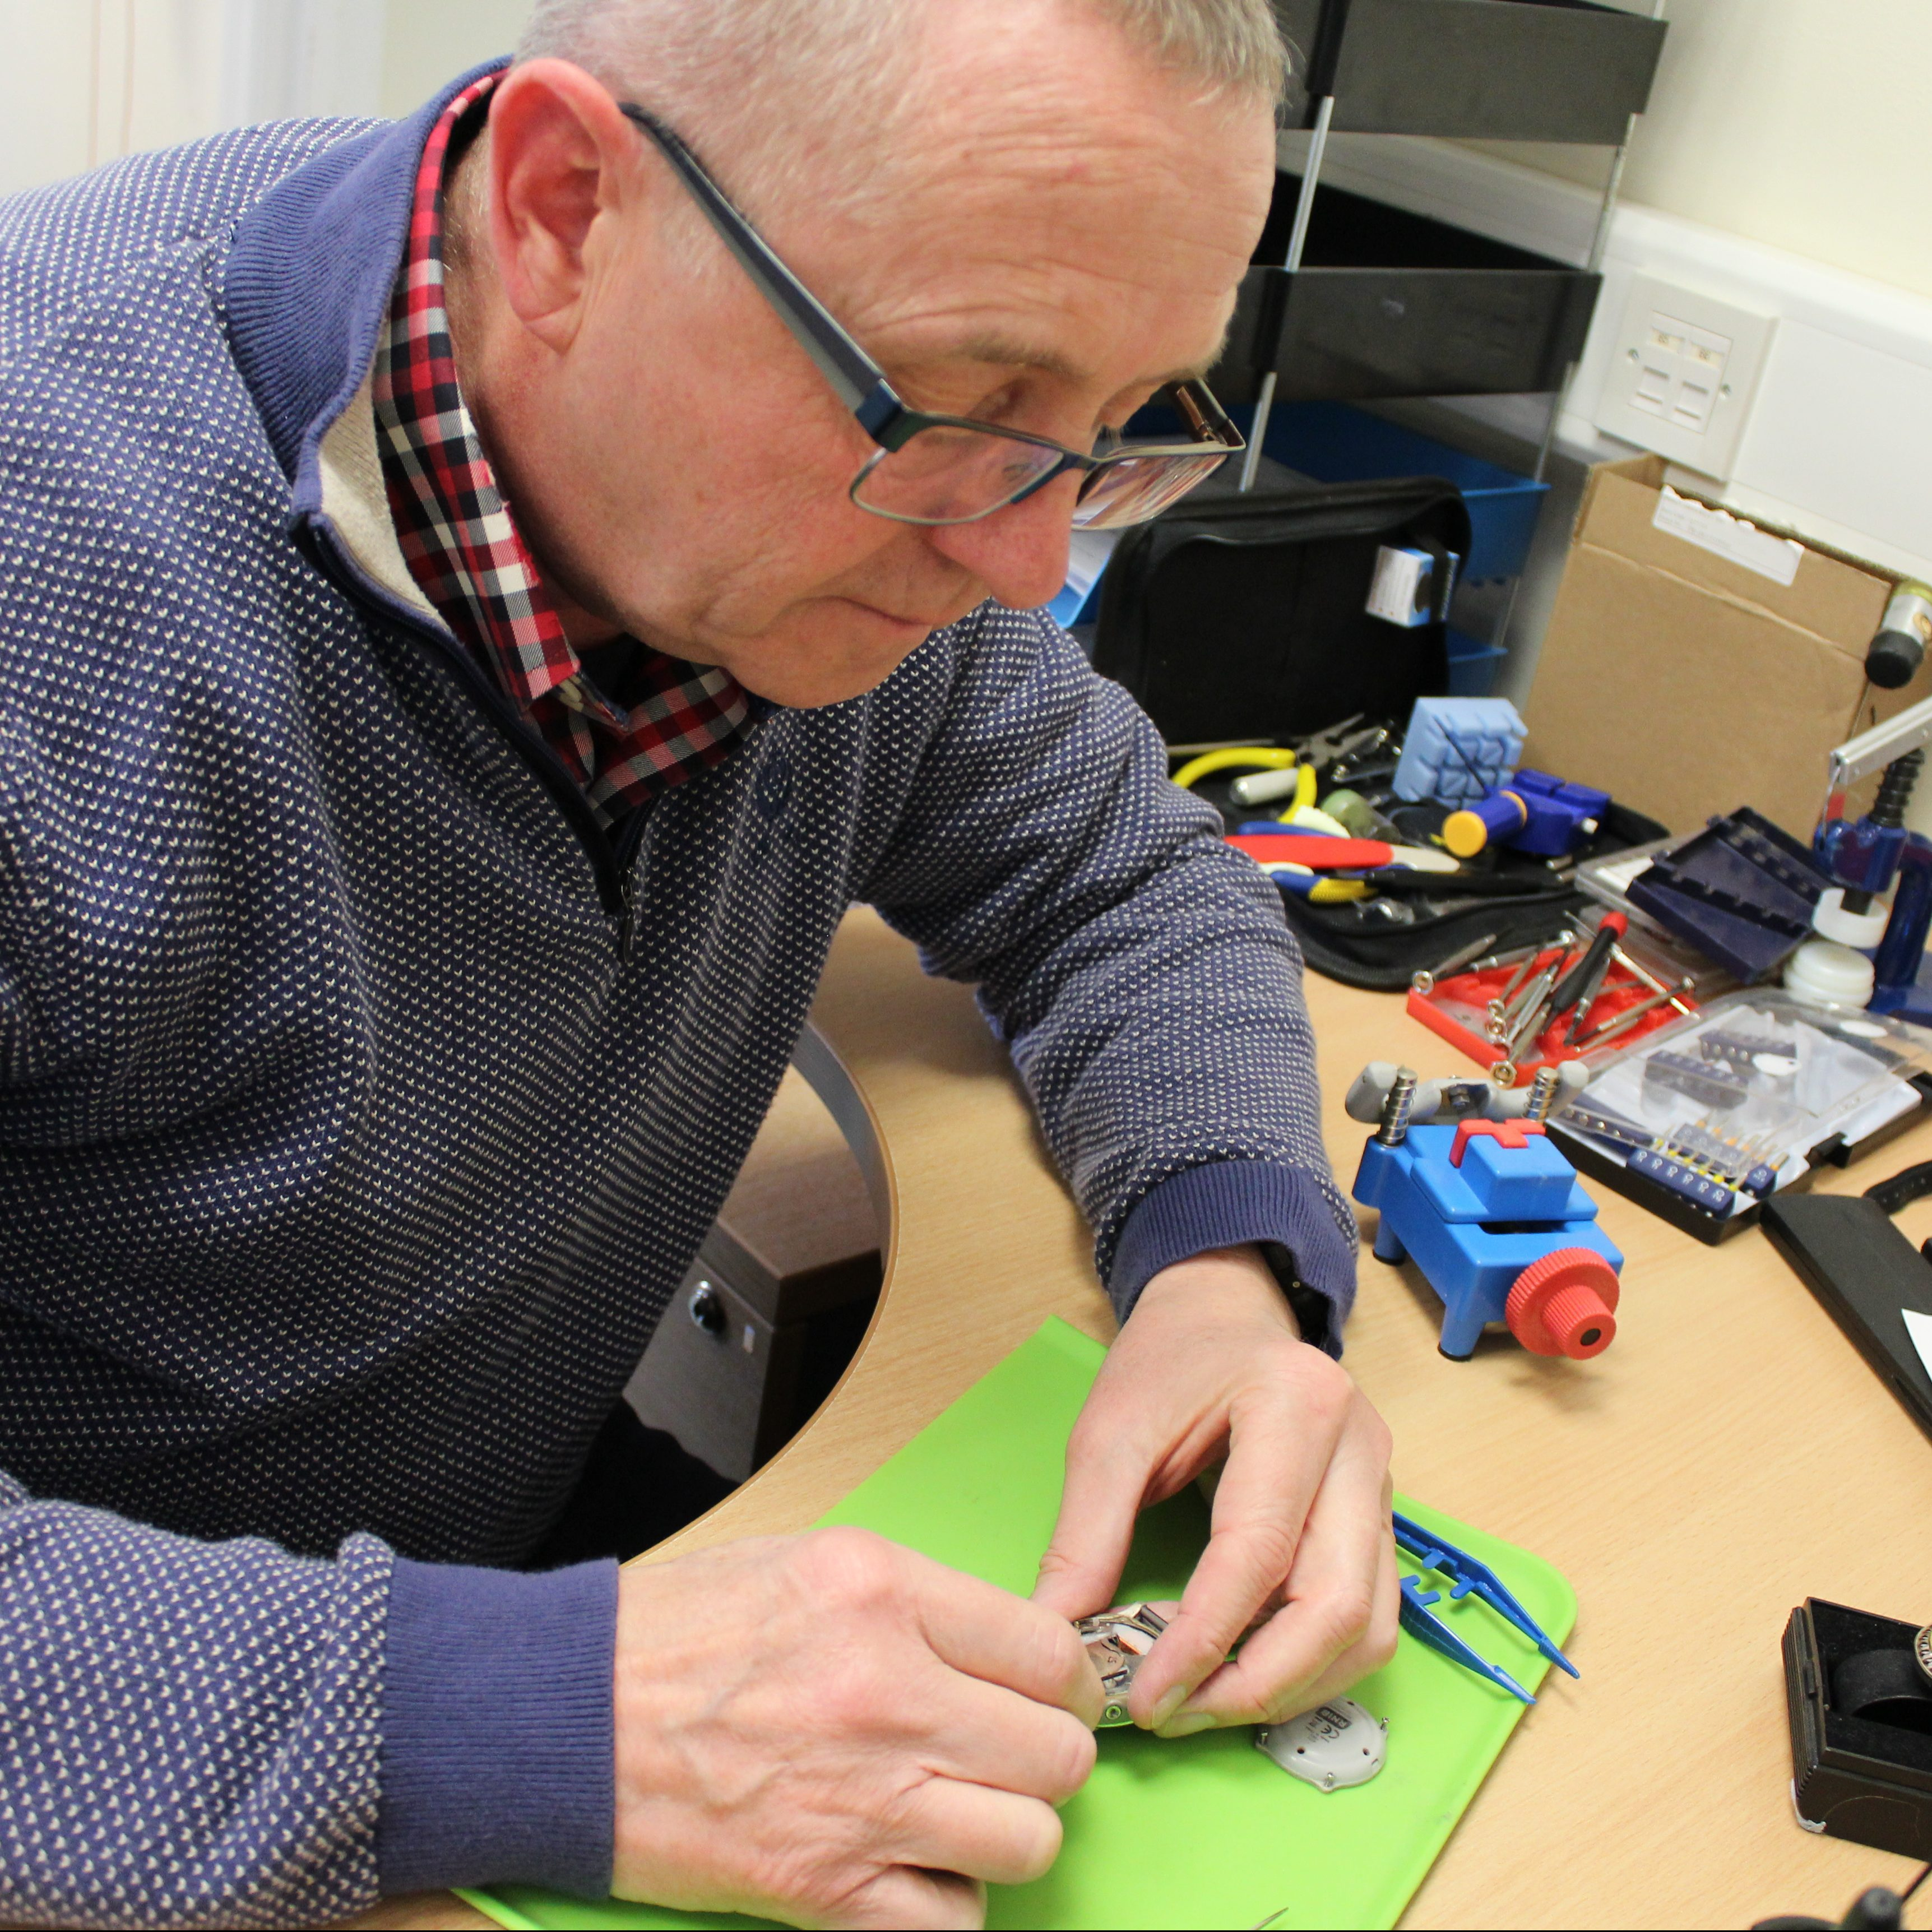 Man opening up a silver watch. Man has grey hair and black framed glasses and is wearing a red checked shirt with blue jumper. On the table with the watch is a green matt and variety of other tools.